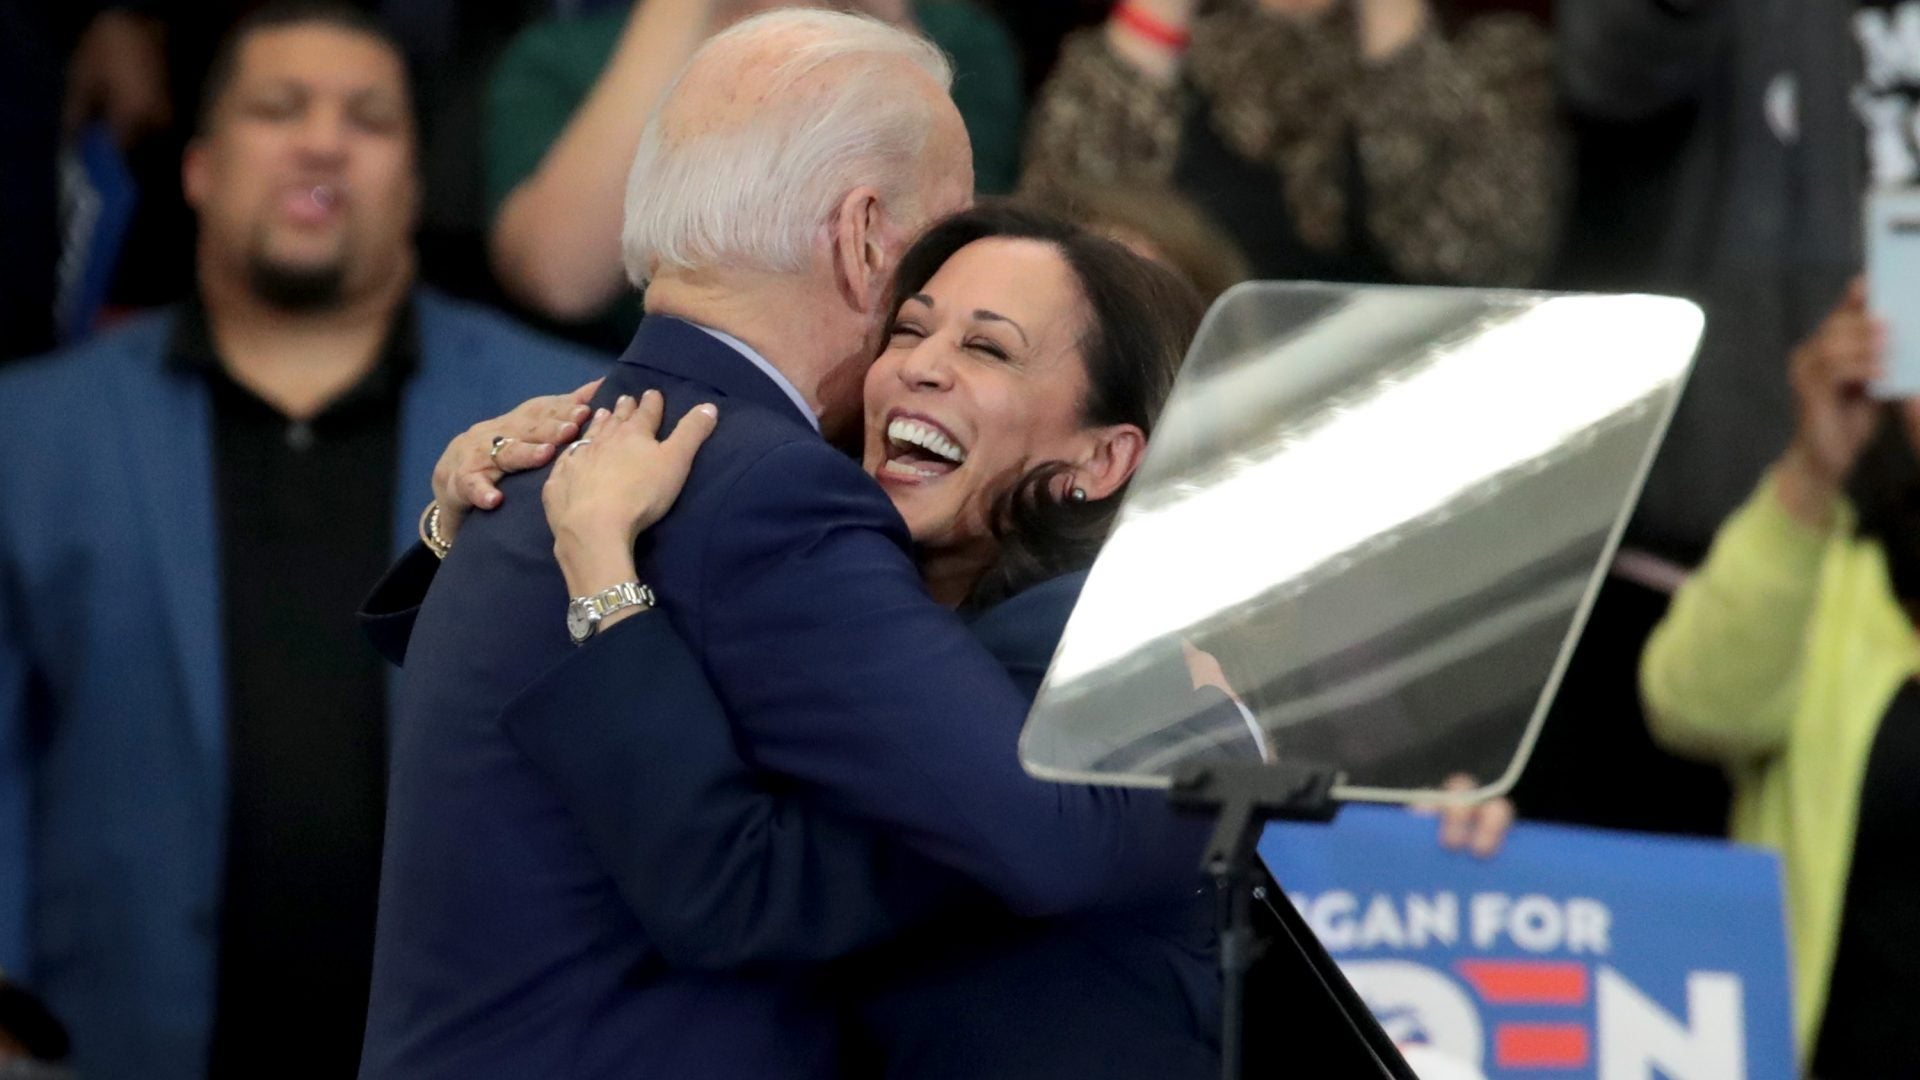 Joe Biden, Kamala Harris, Elected President And Vice President Of The United States